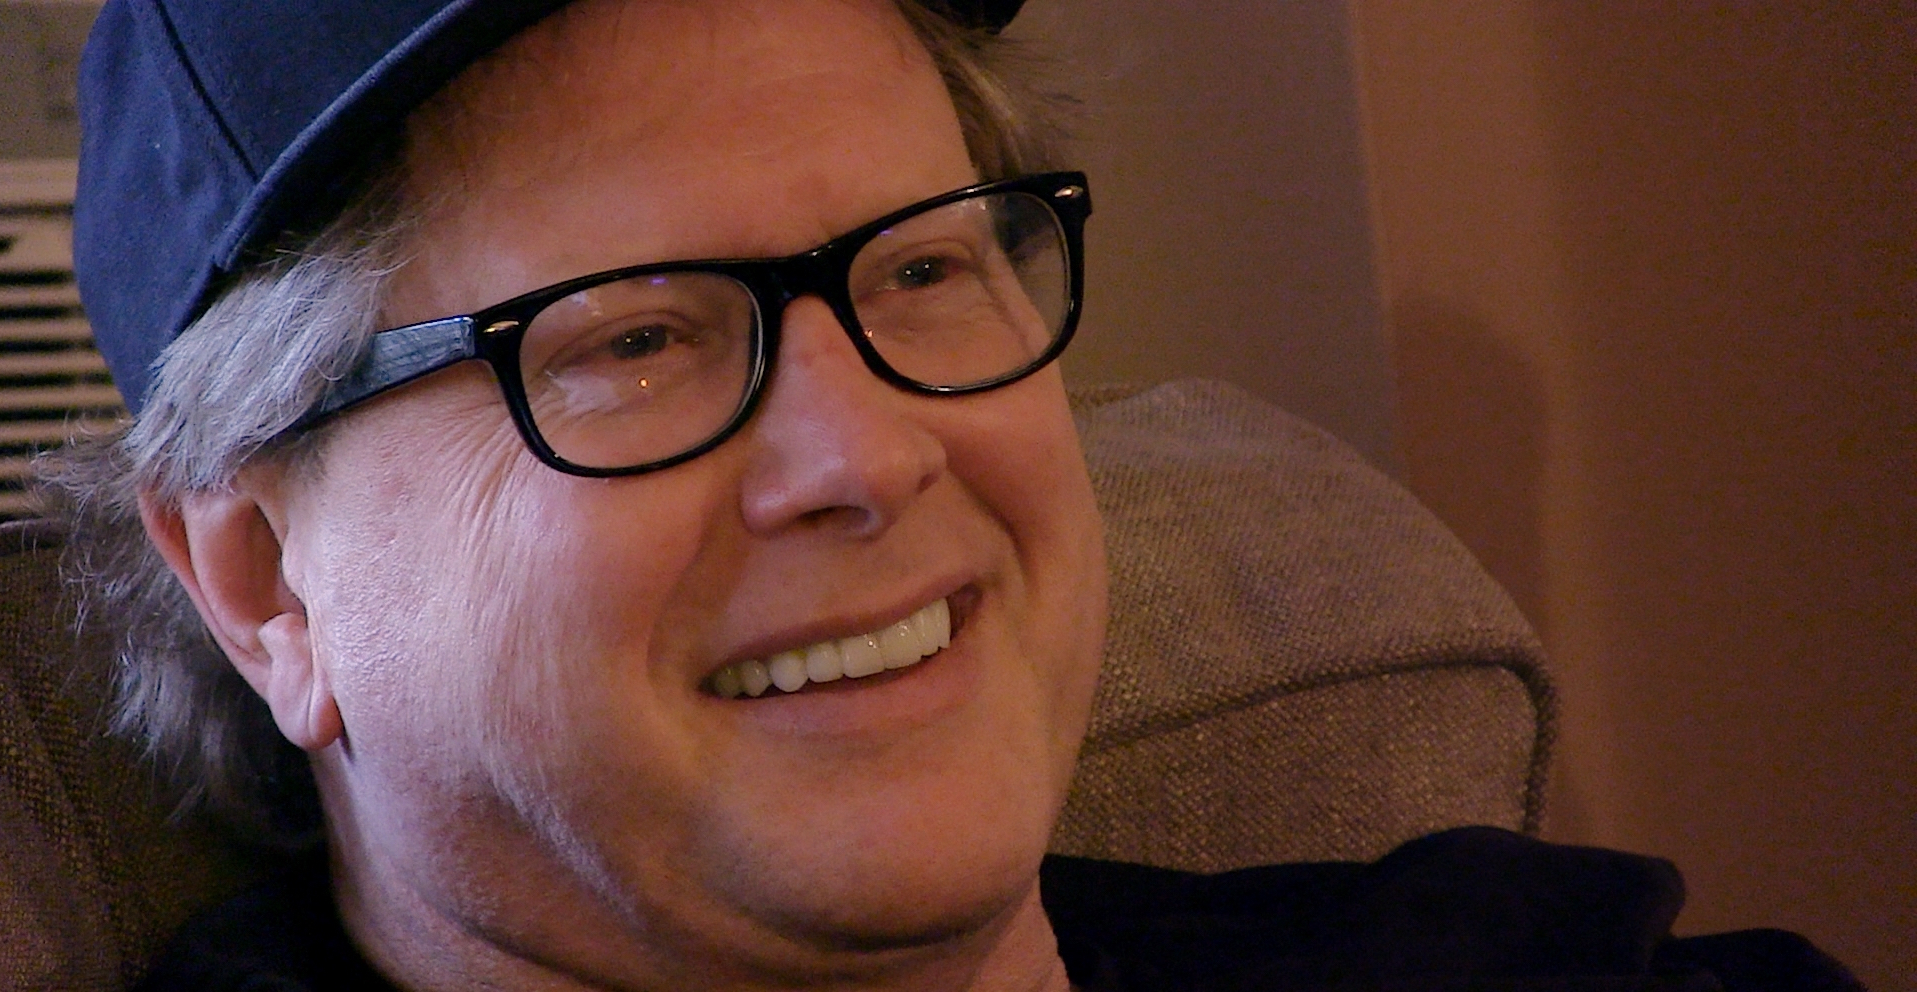 Darrell Hammond - From the documentary film Cracked Up.